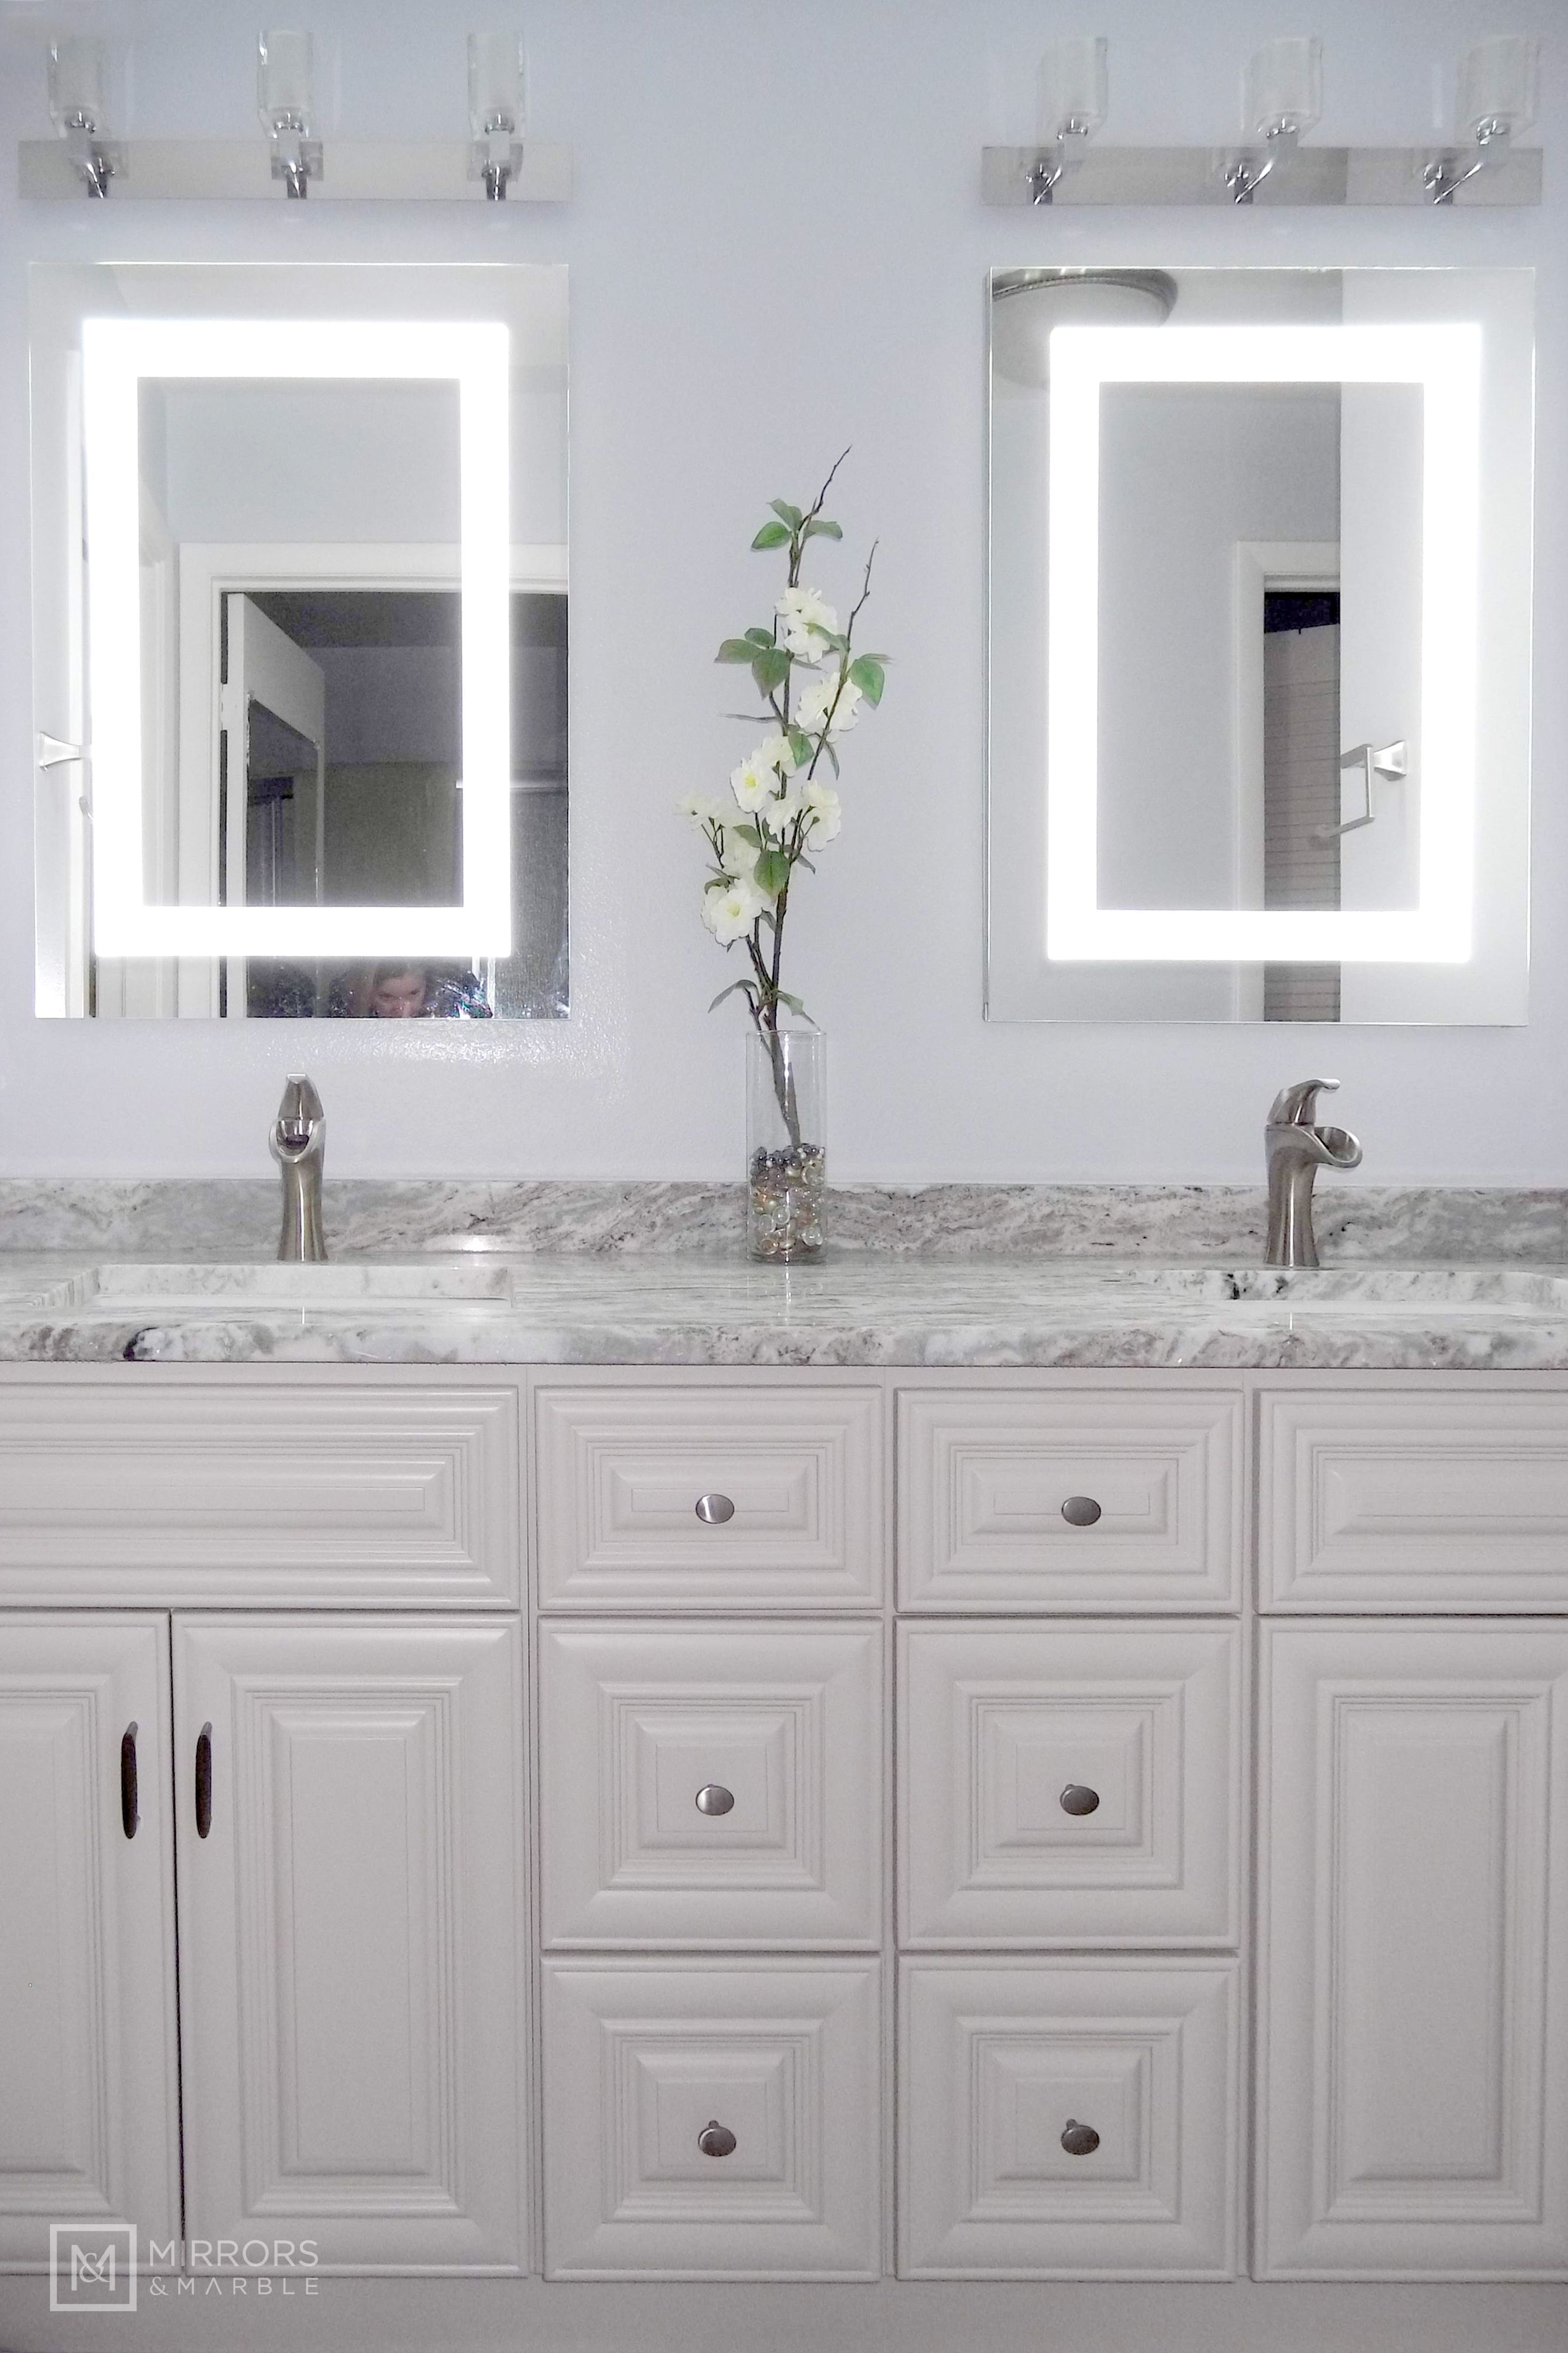 Pin On Modern Bathroom Sinks Small Spaces